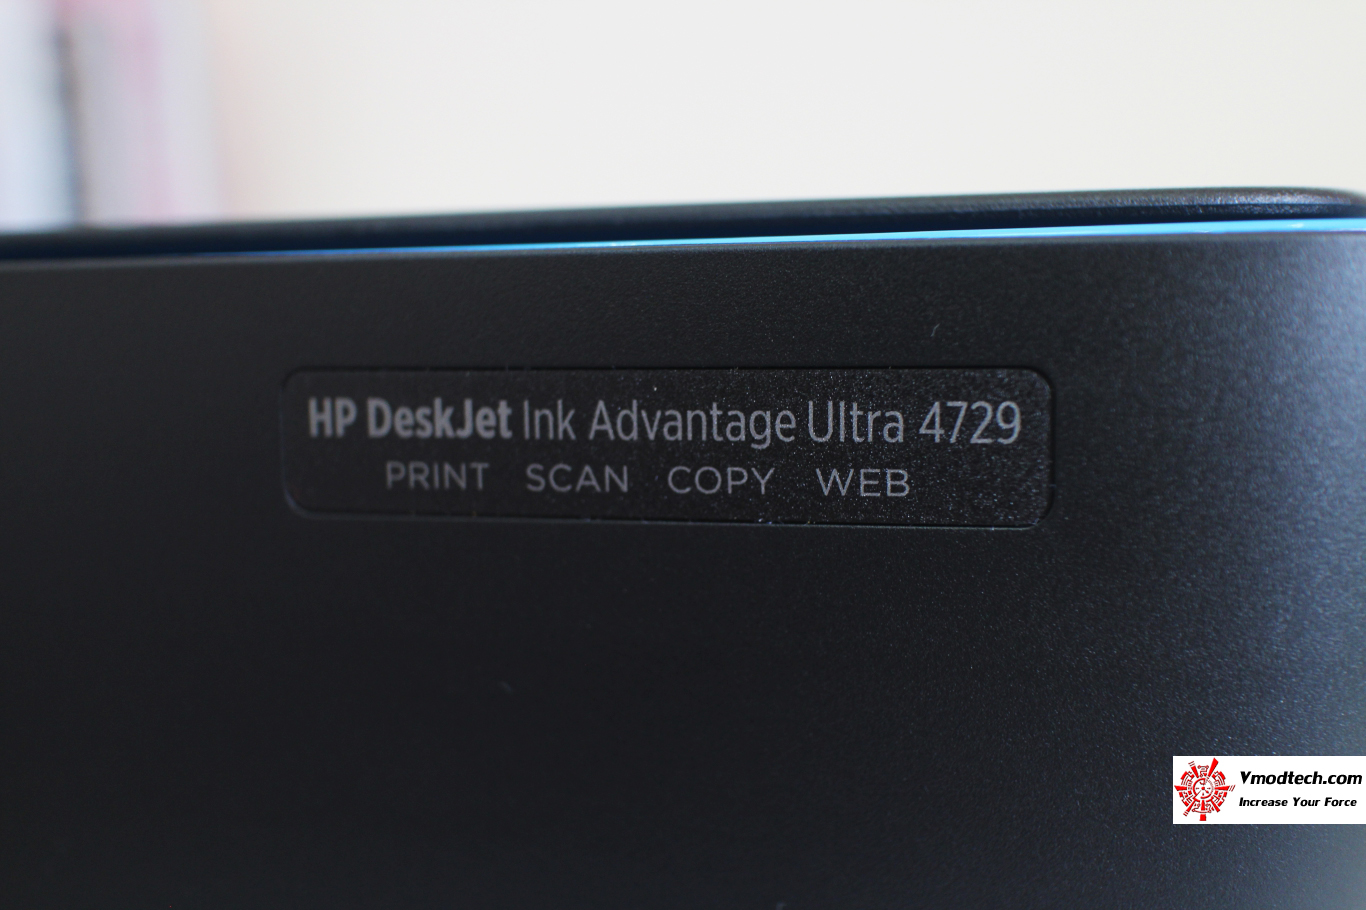 img 6615 HP Deskjet Ink Advantage Ultra 4729 All in One Printer